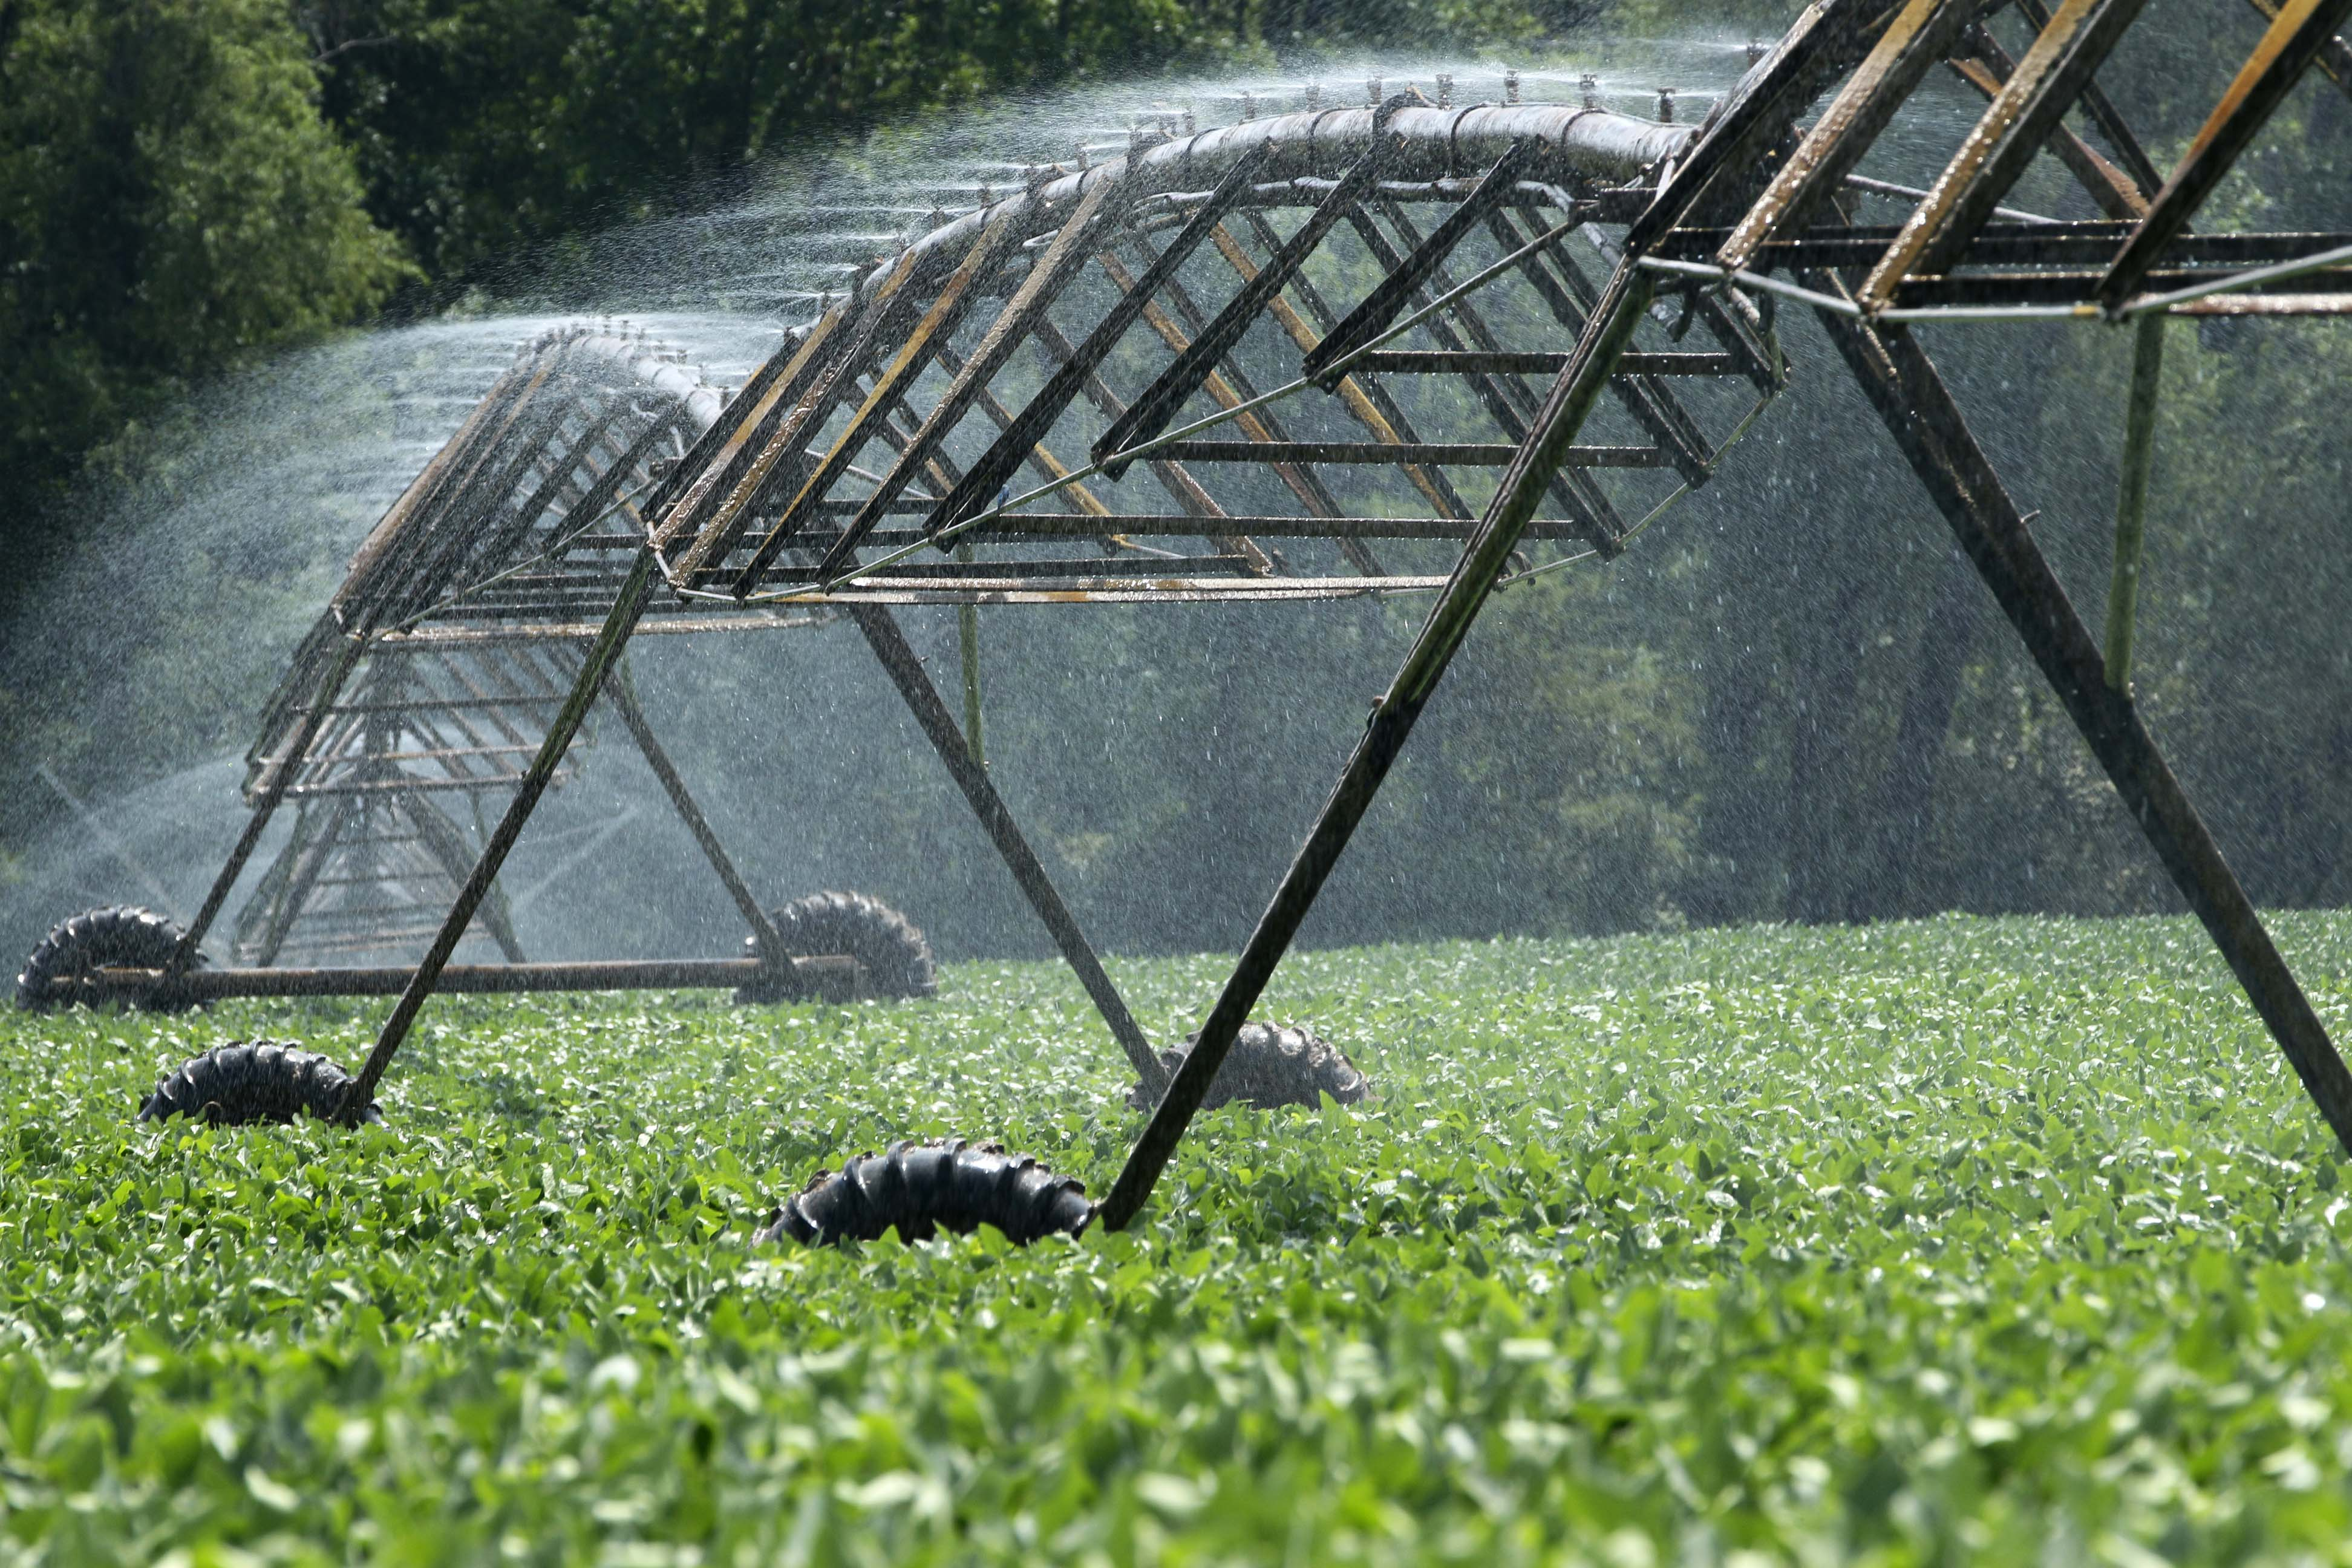 irrigation system sprays water on field of crops